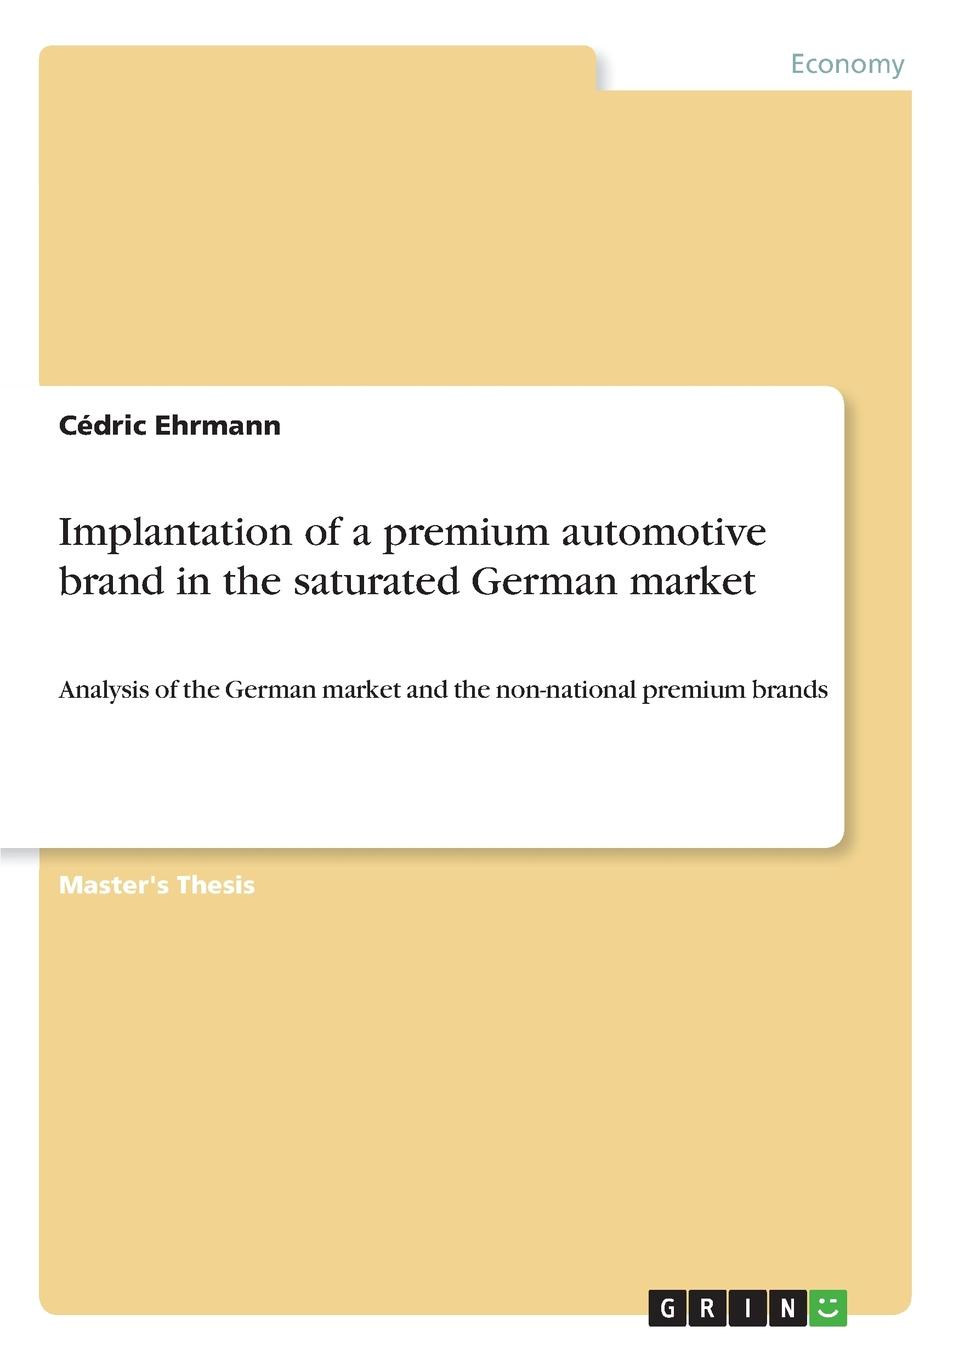 Cédric Ehrmann Implantation of a premium automotive brand in the saturated German market halil kiymaz market microstructure in emerging and developed markets price discovery information flows and transaction costs